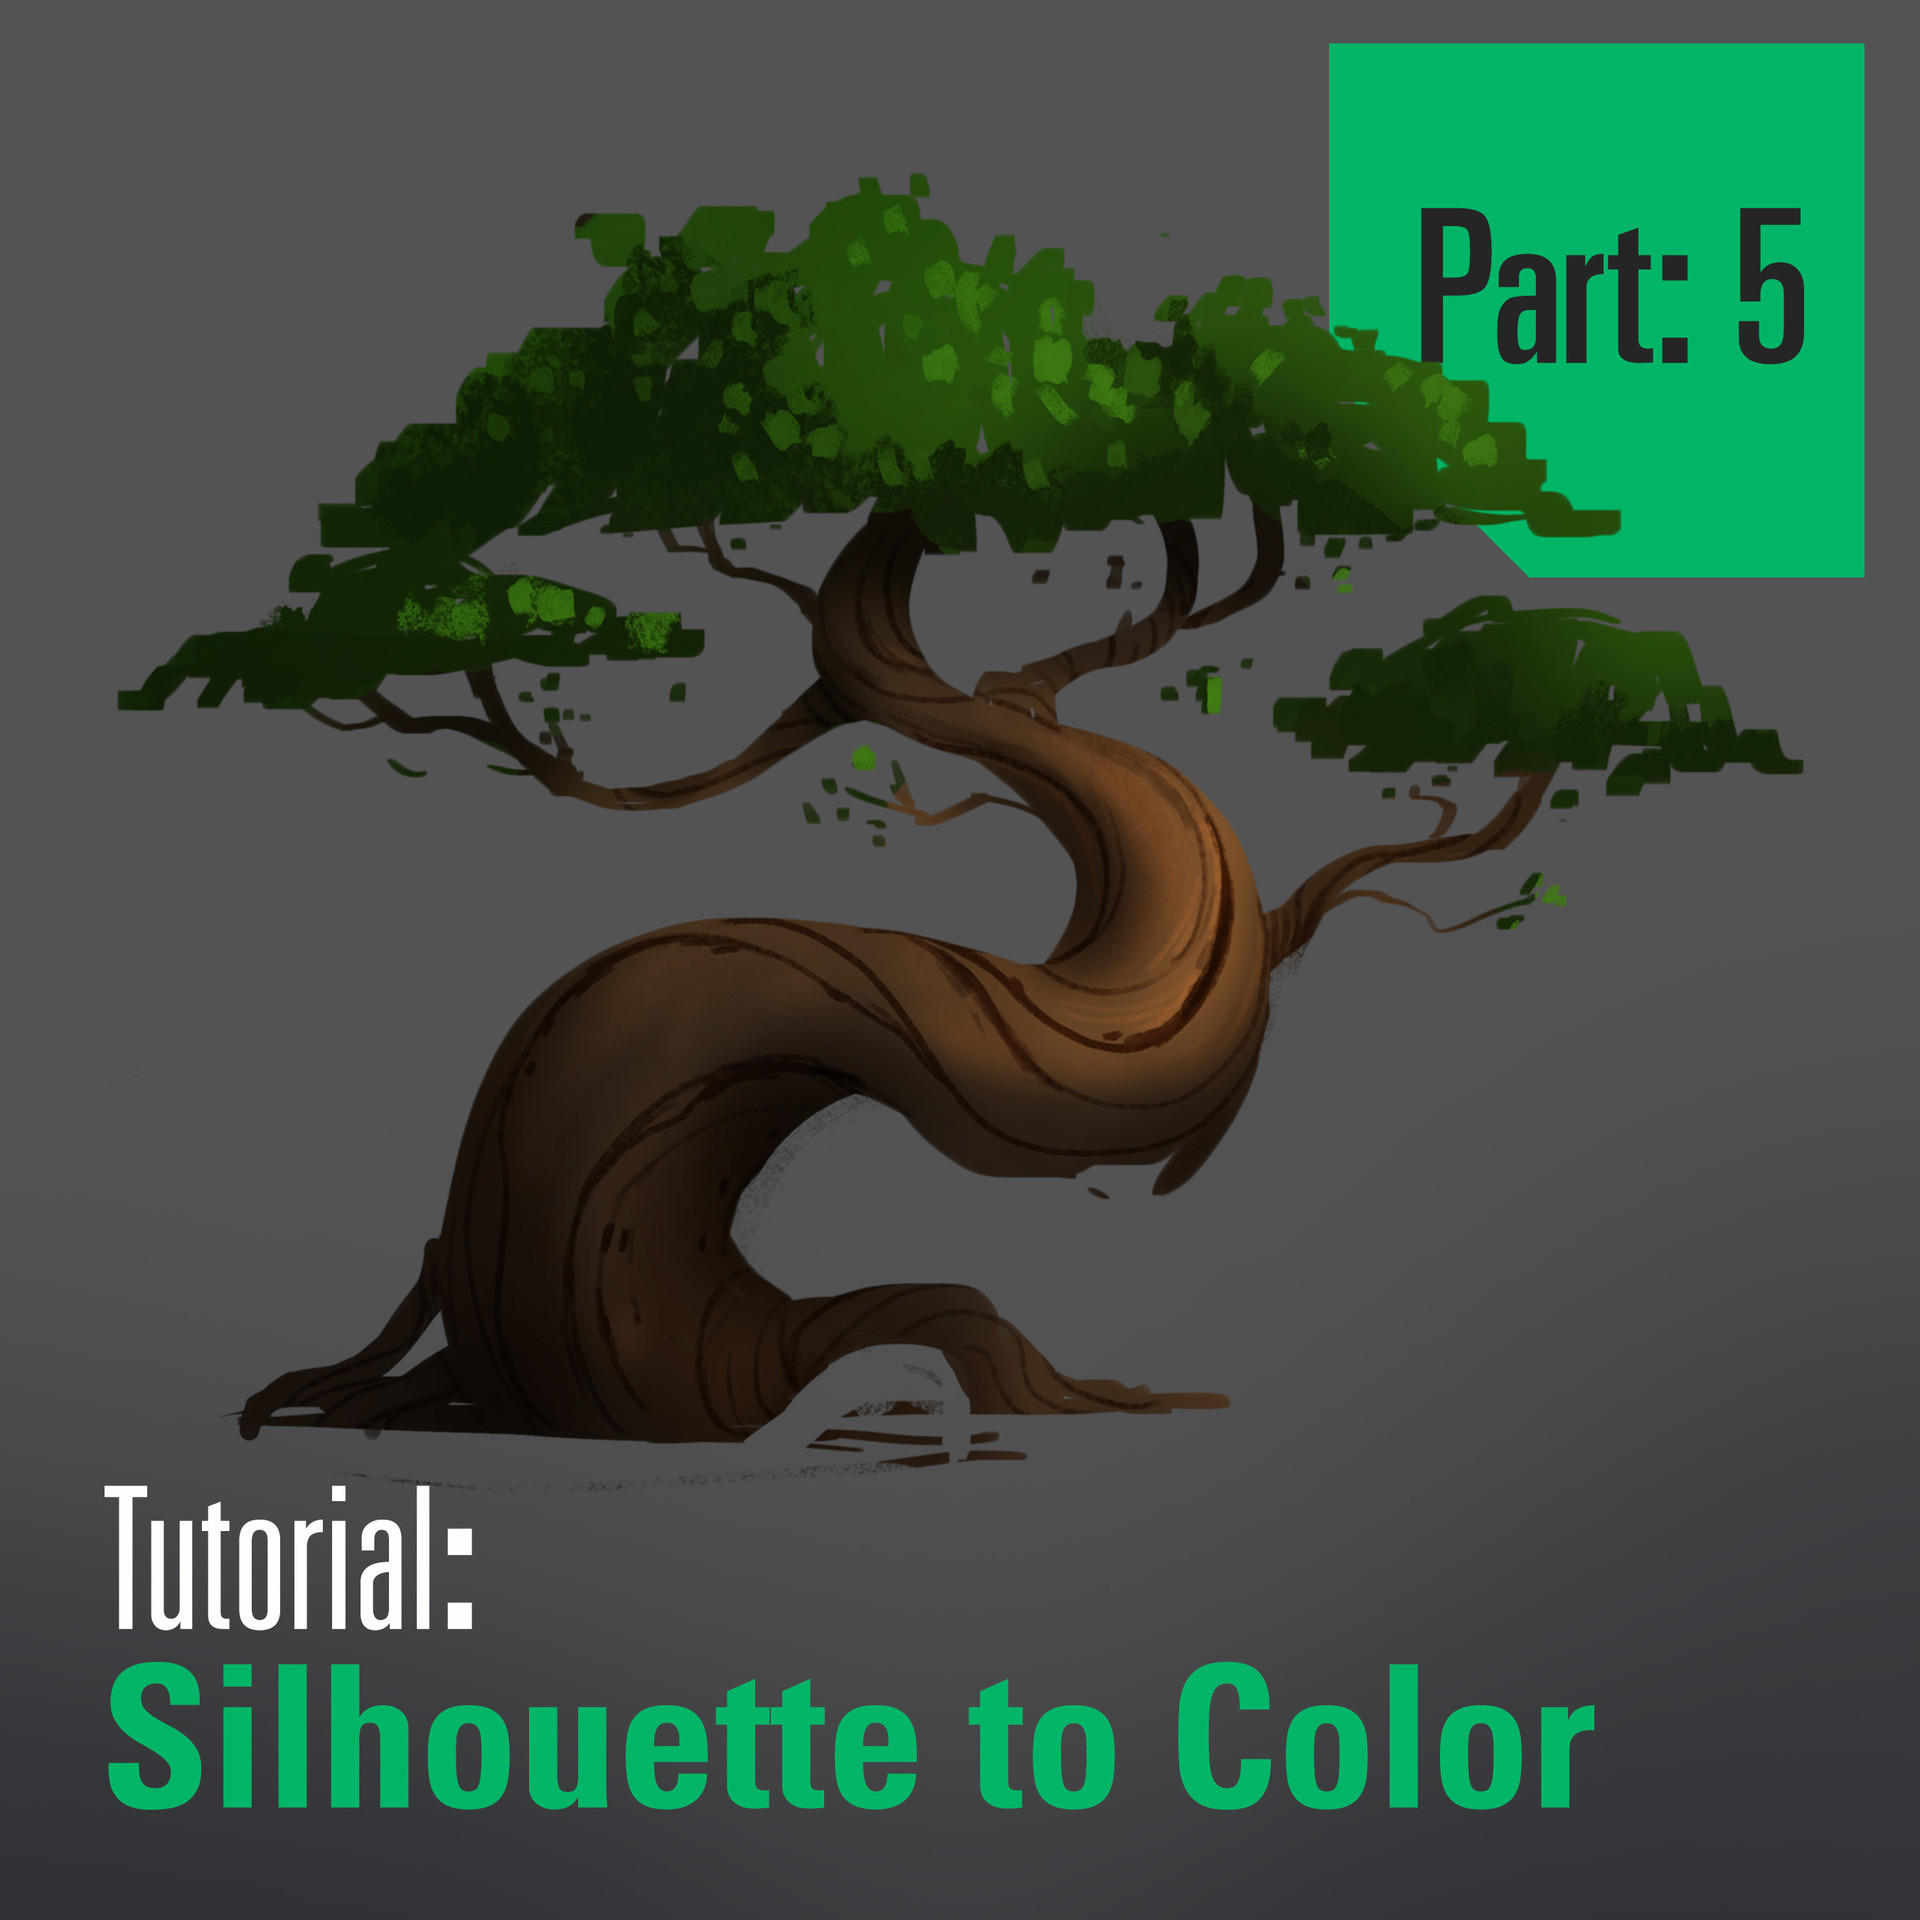 Tree Tutorial - Silhouette to Color - Part 5